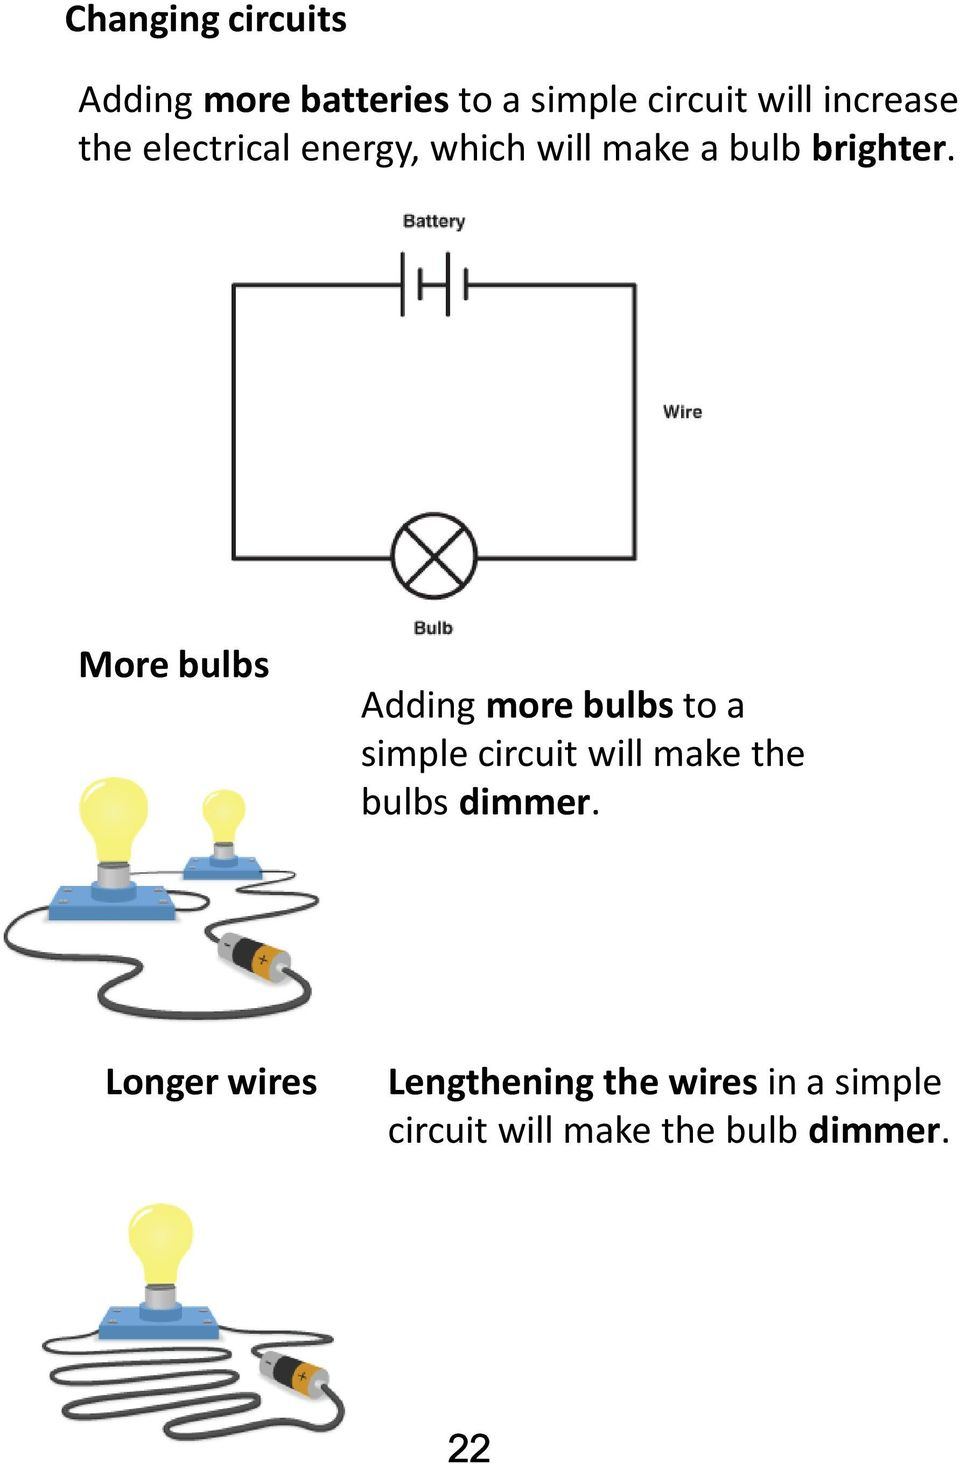 Electricity Unit Science And Technolgy Cycle 3 Name Group Teacher Compare The Circuits Series Circuit Parallel Dimmer Bulbs More Adding To A Simple Will Make